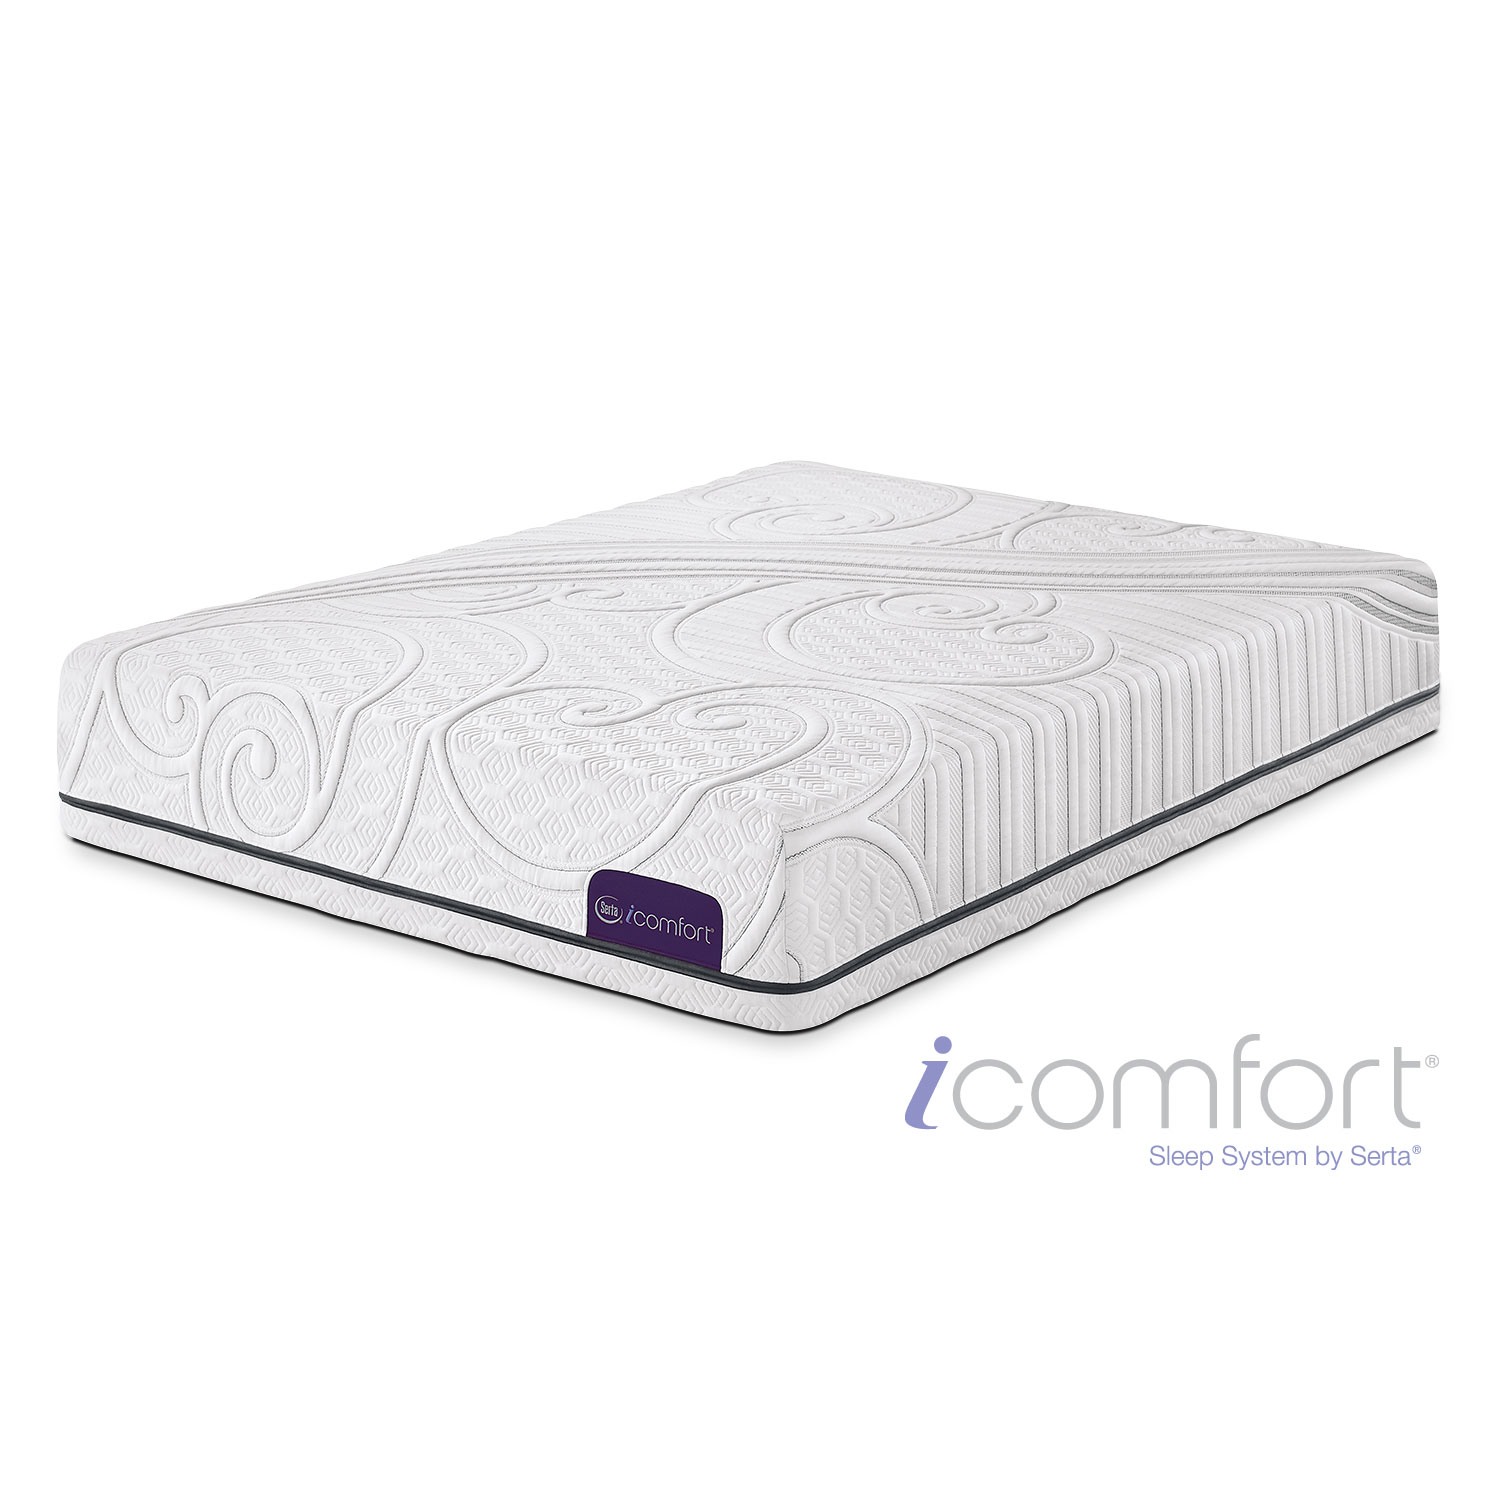 Mattresses and Bedding - iComfort Guidance California King Mattress